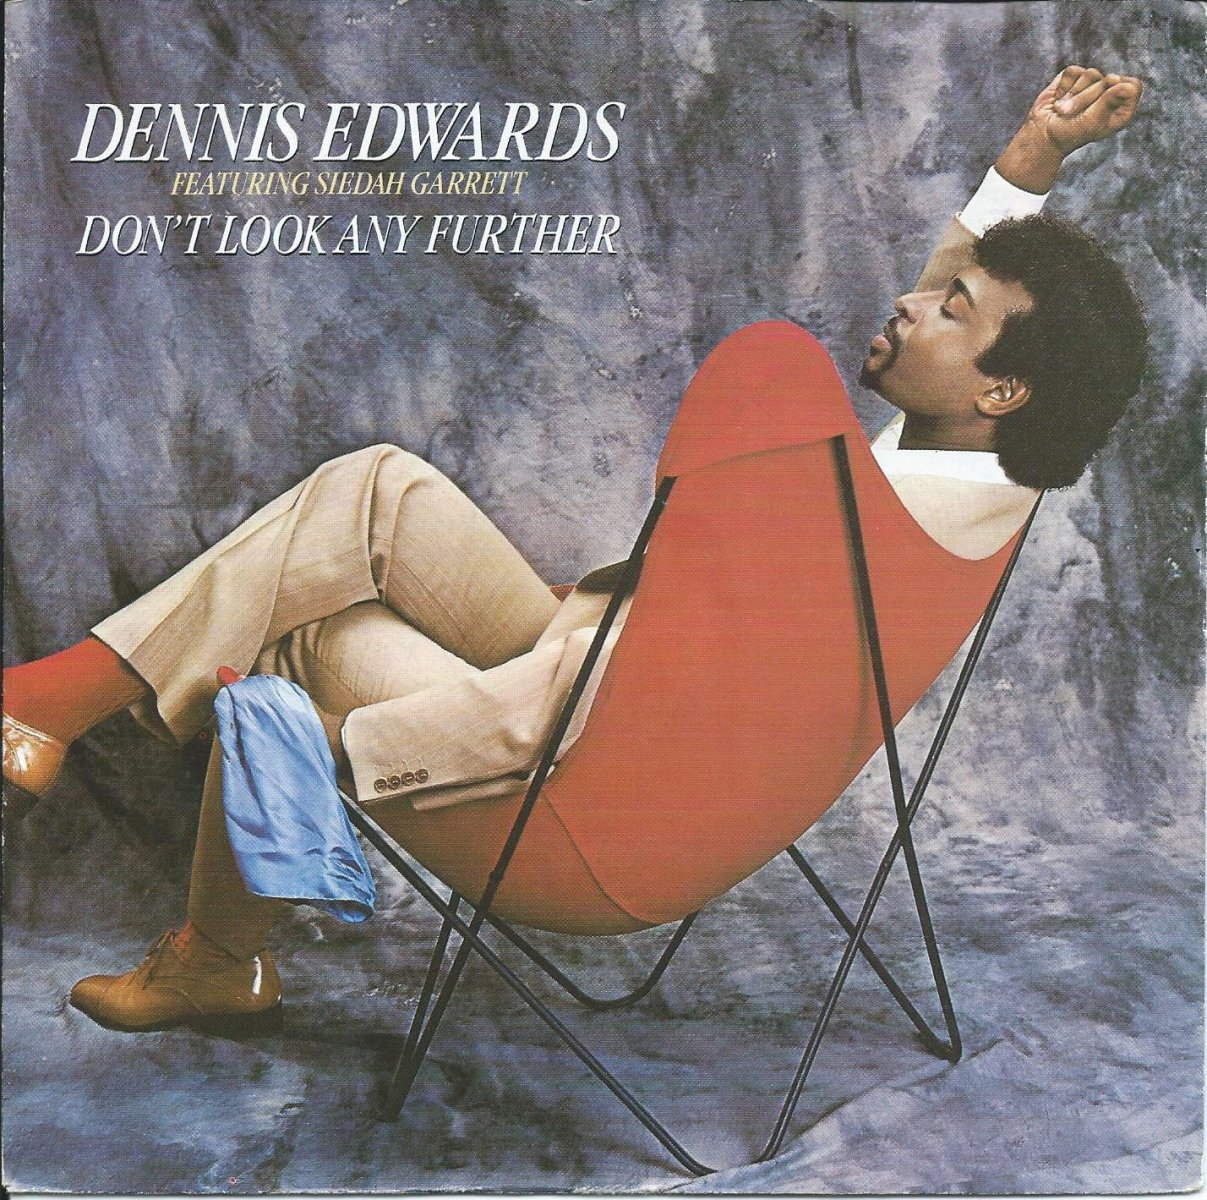 DENNIS EDWARDS / DON'T LOOK ANY FURTHER / I THOUGHT I COULD HANDLE IT (7